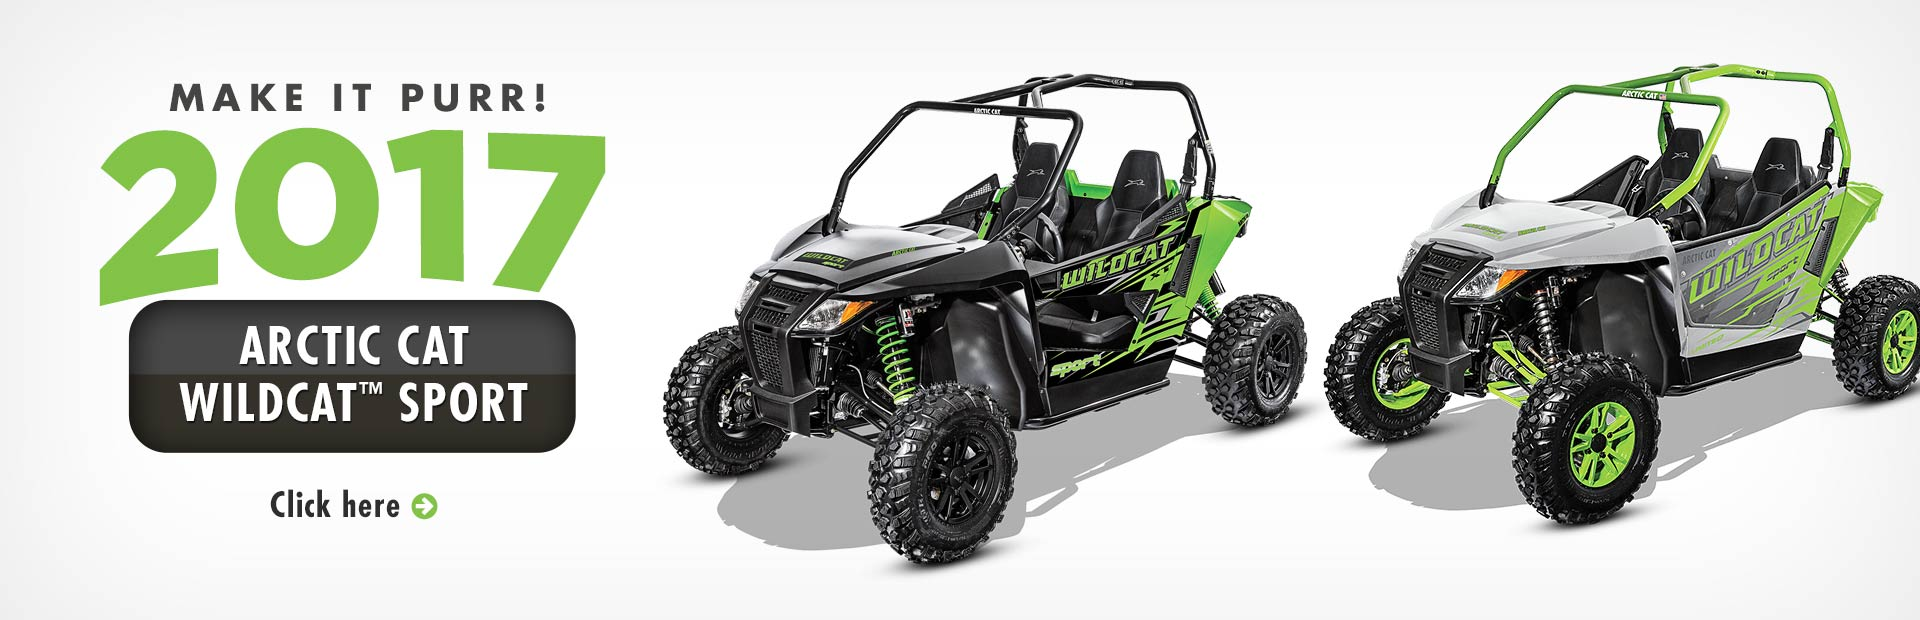 Click here to view our selection of 2017 Arctic Cat Wildcat™ Sport side x sides!